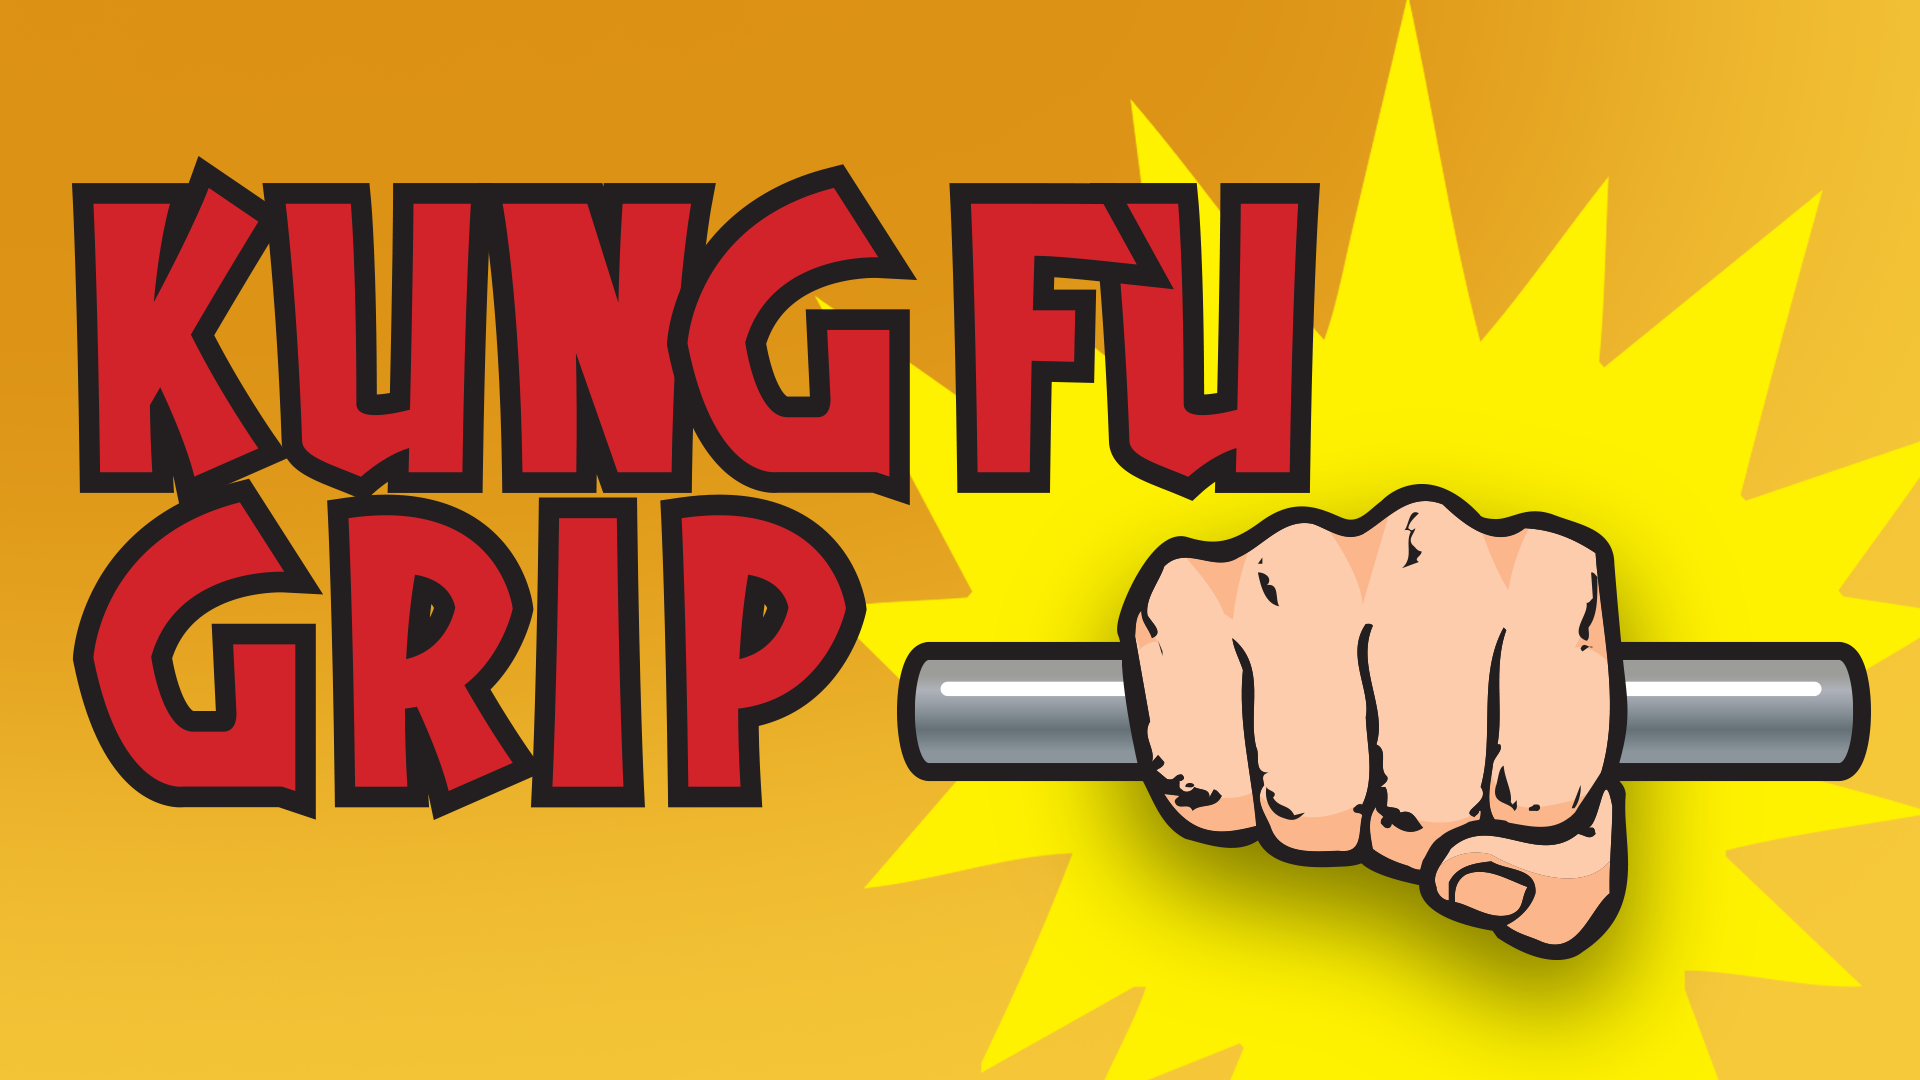 Download Kung Fu Grip cool free fonts